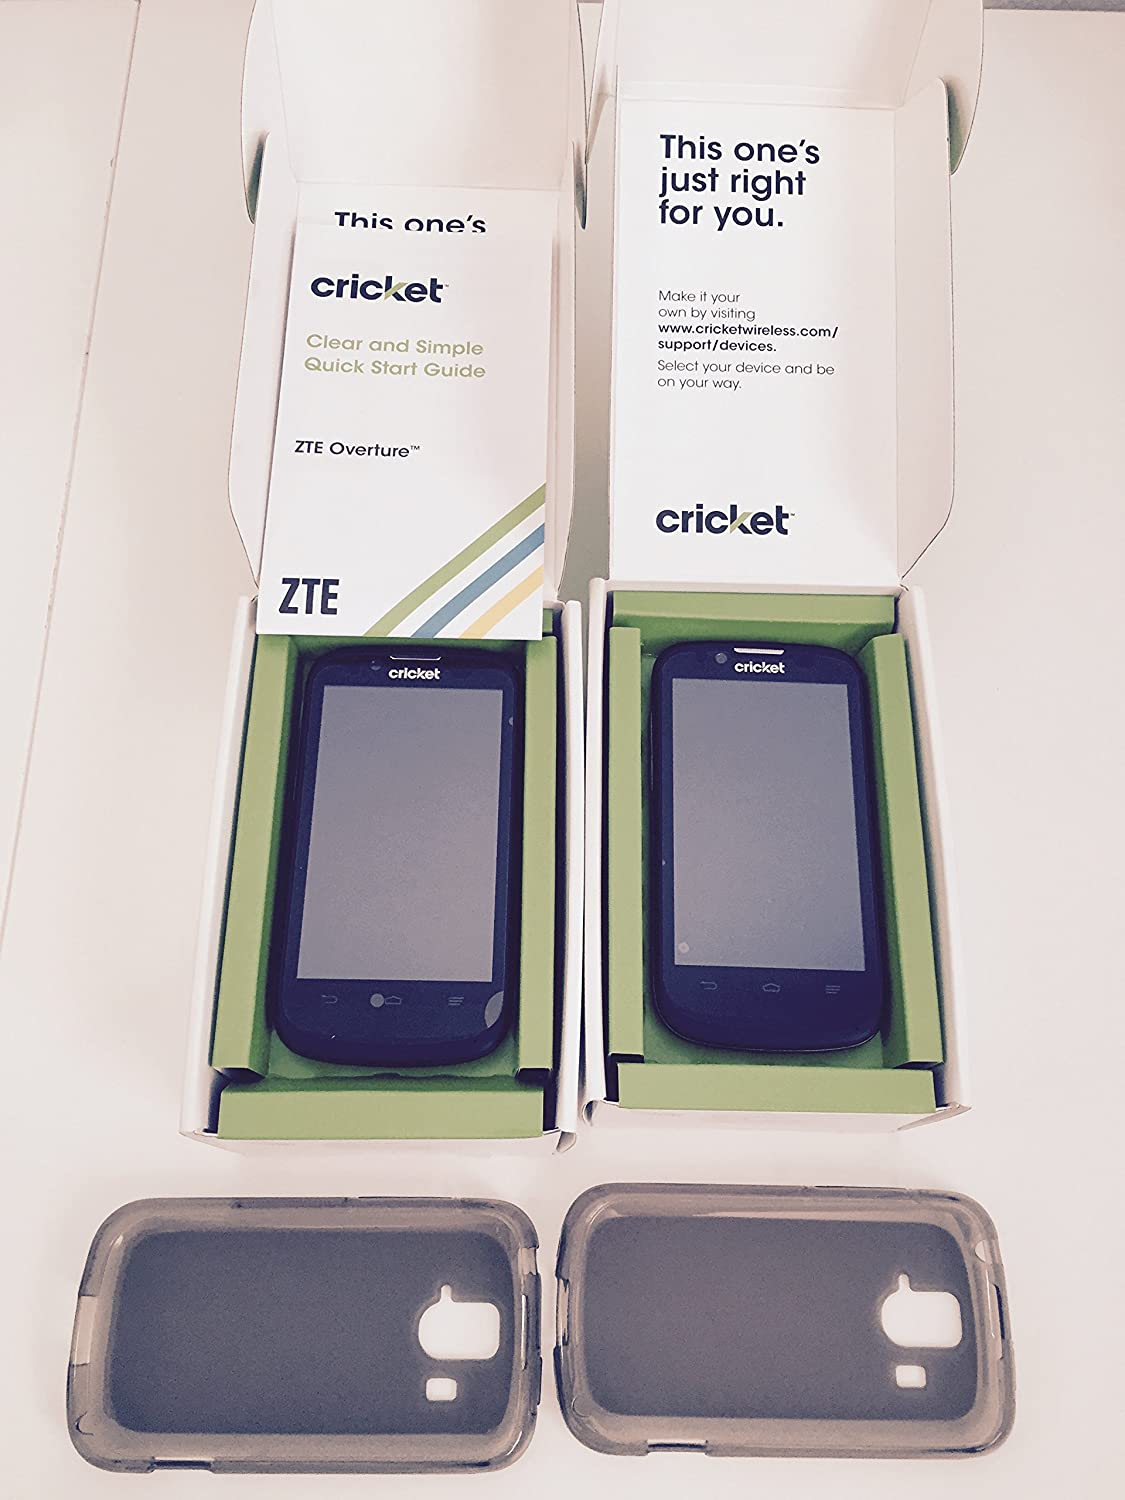 Cricketwireless com support devices - Amazon Com Zte Overture Z995 Smartphone Cricket No Contract Cell Phones Accessories